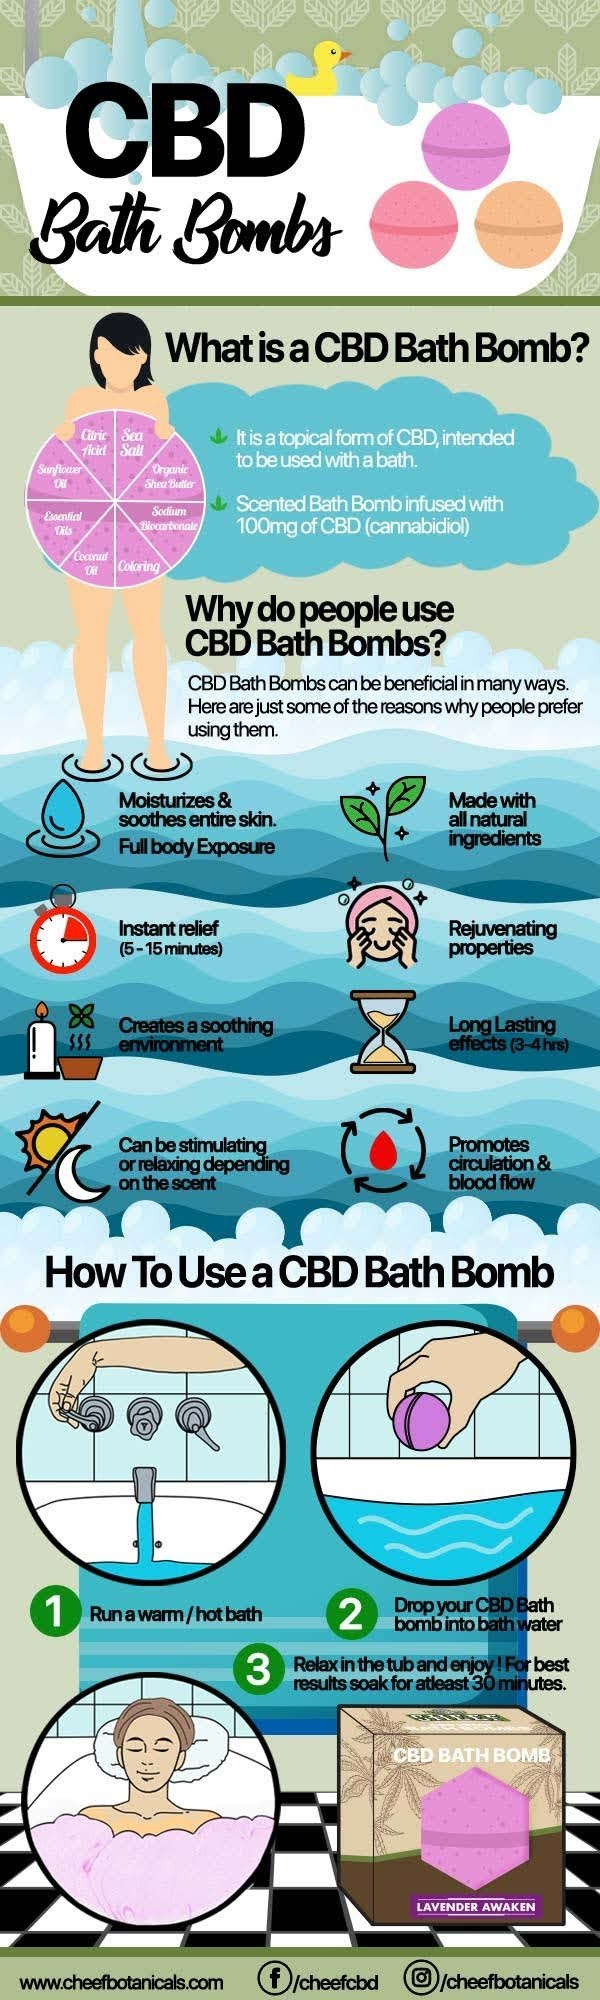 What is a CBD Bath Bomb? #infographic